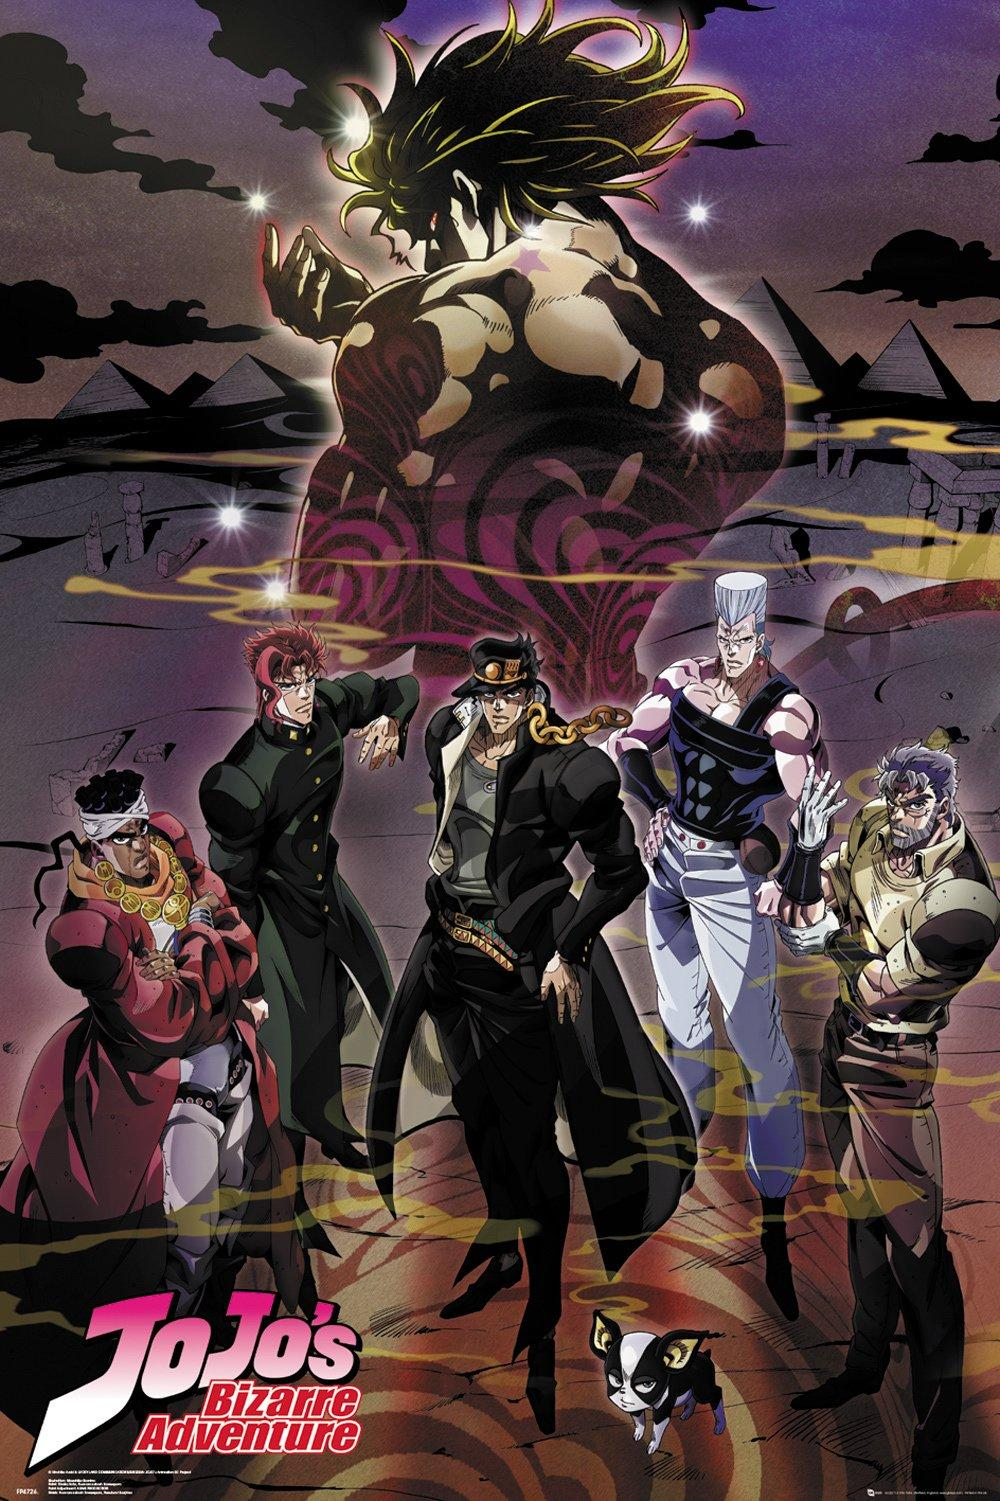 JOJO'S BIZARRE ADVENTURE - Poster 61X91 - Group